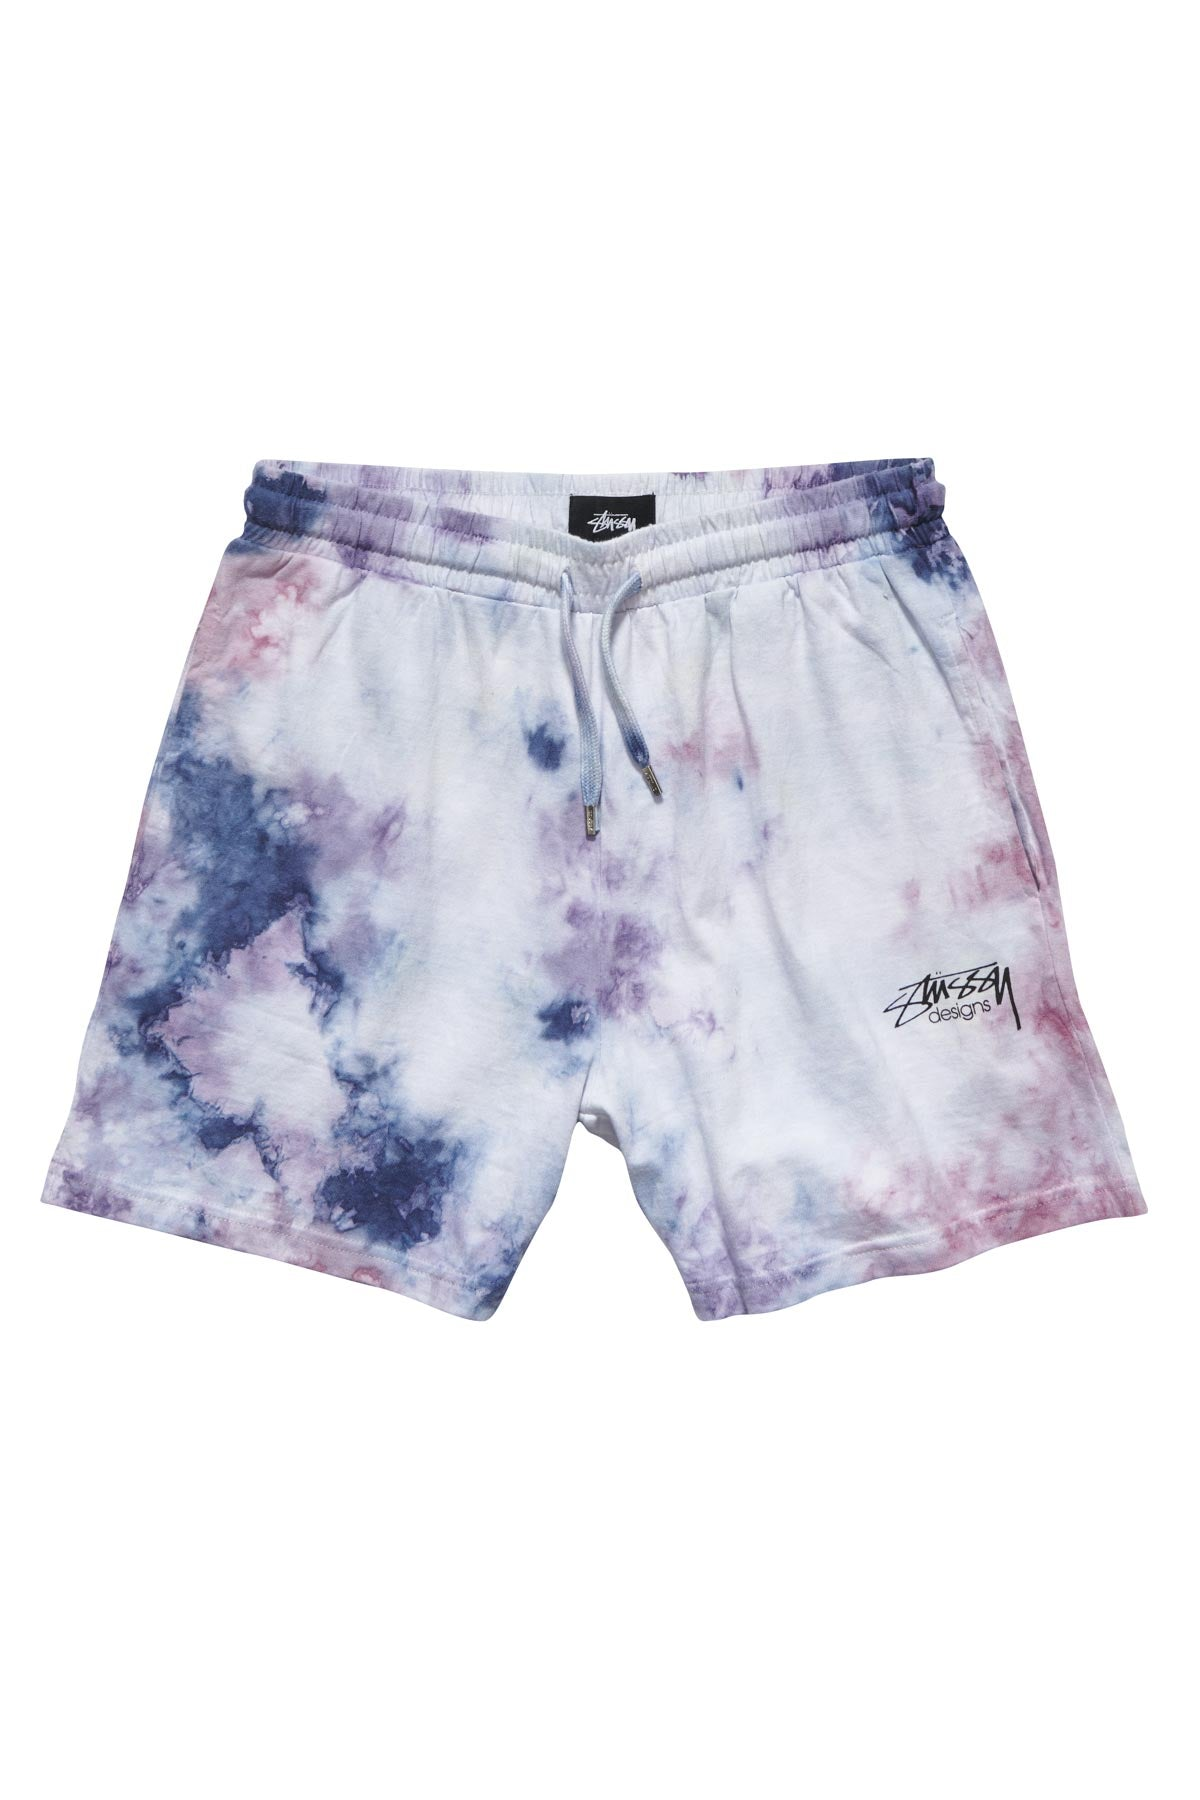 Designs Rugby Marble Short